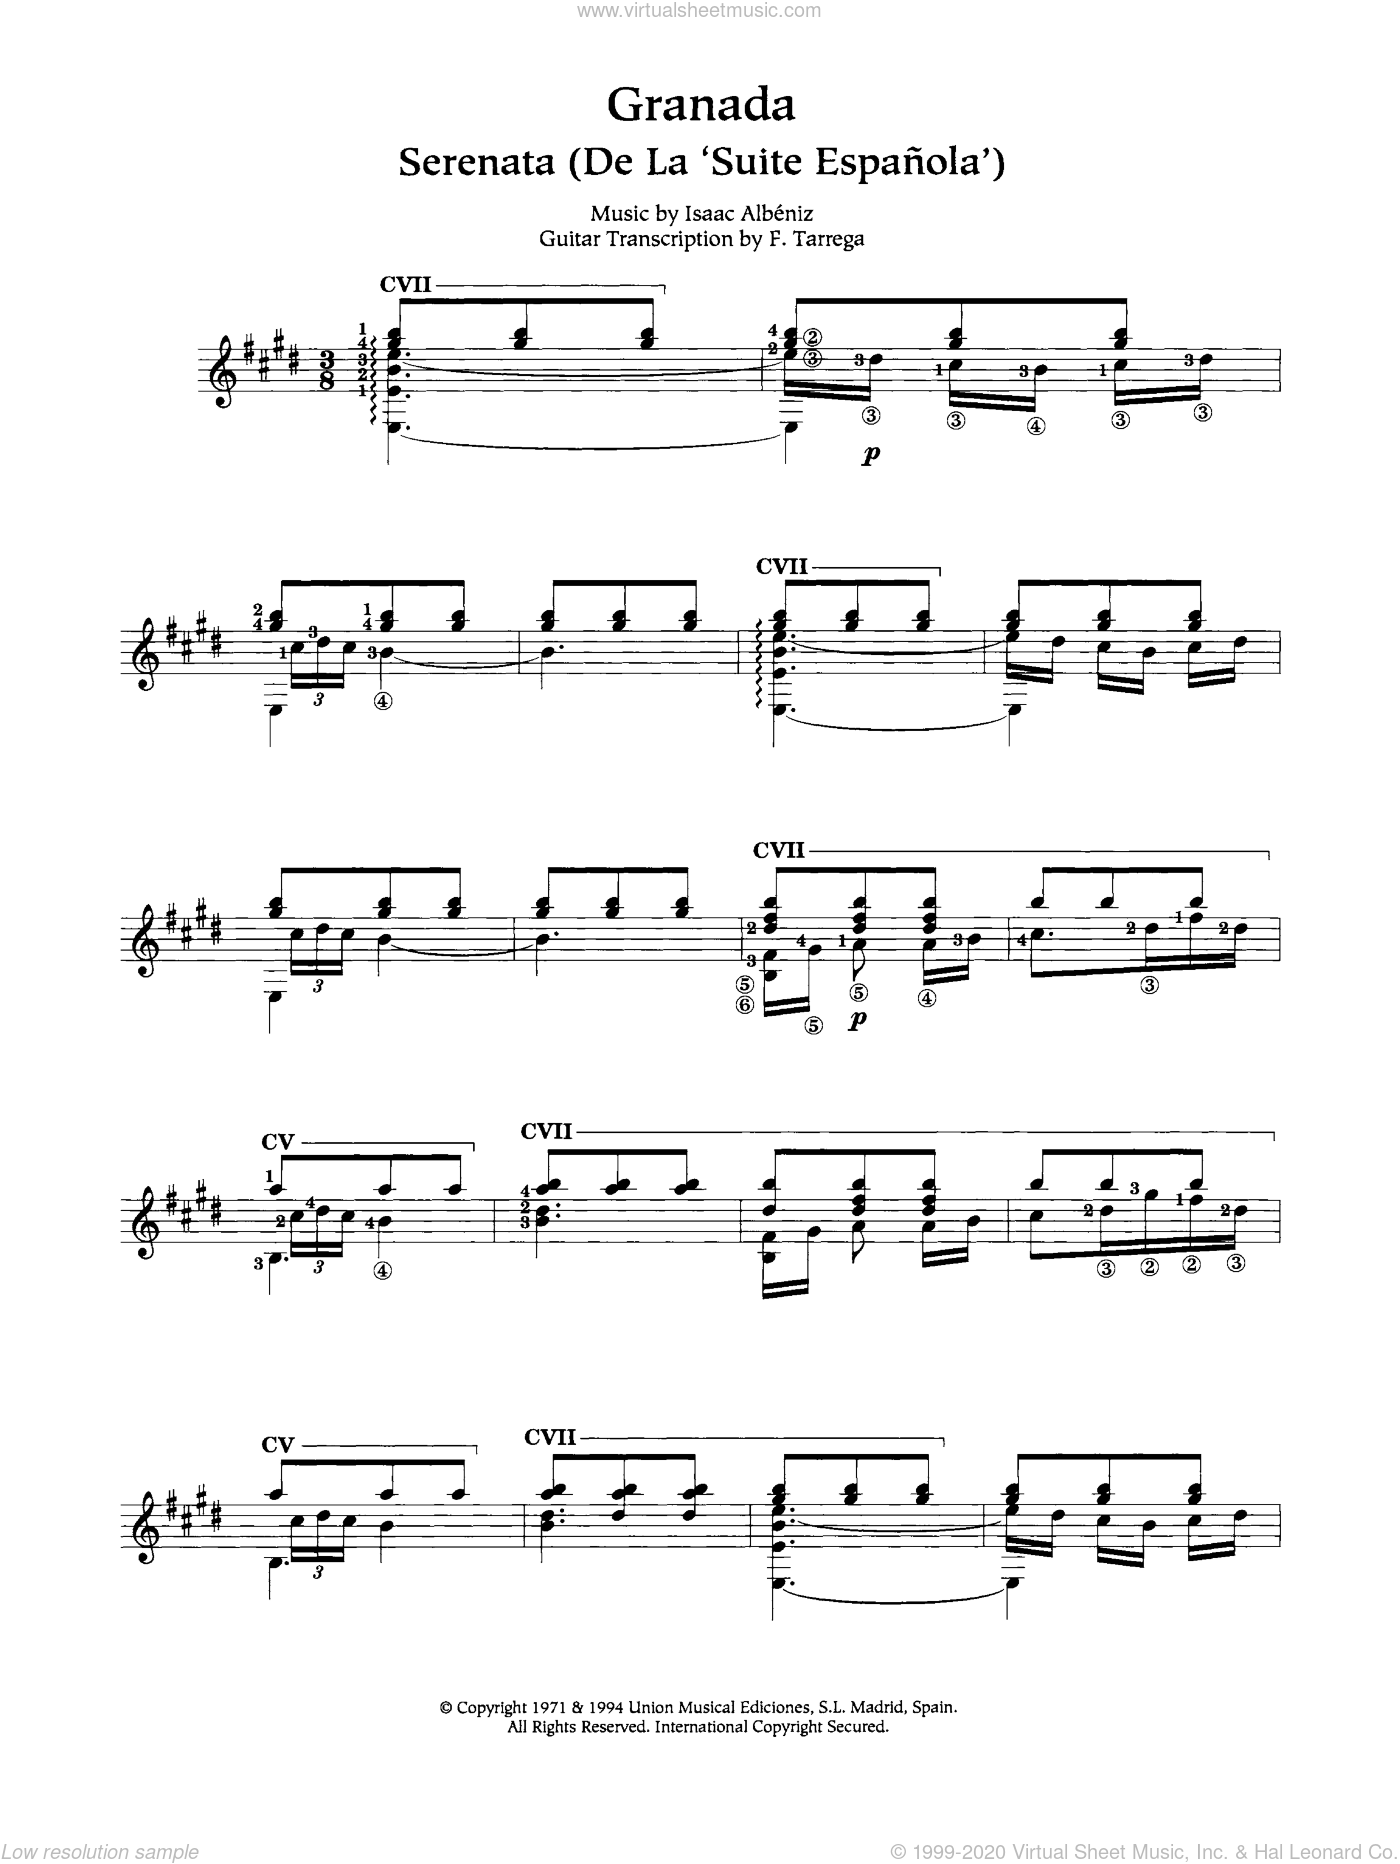 Granada sheet music for guitar solo (chords) by Isaac Albeniz